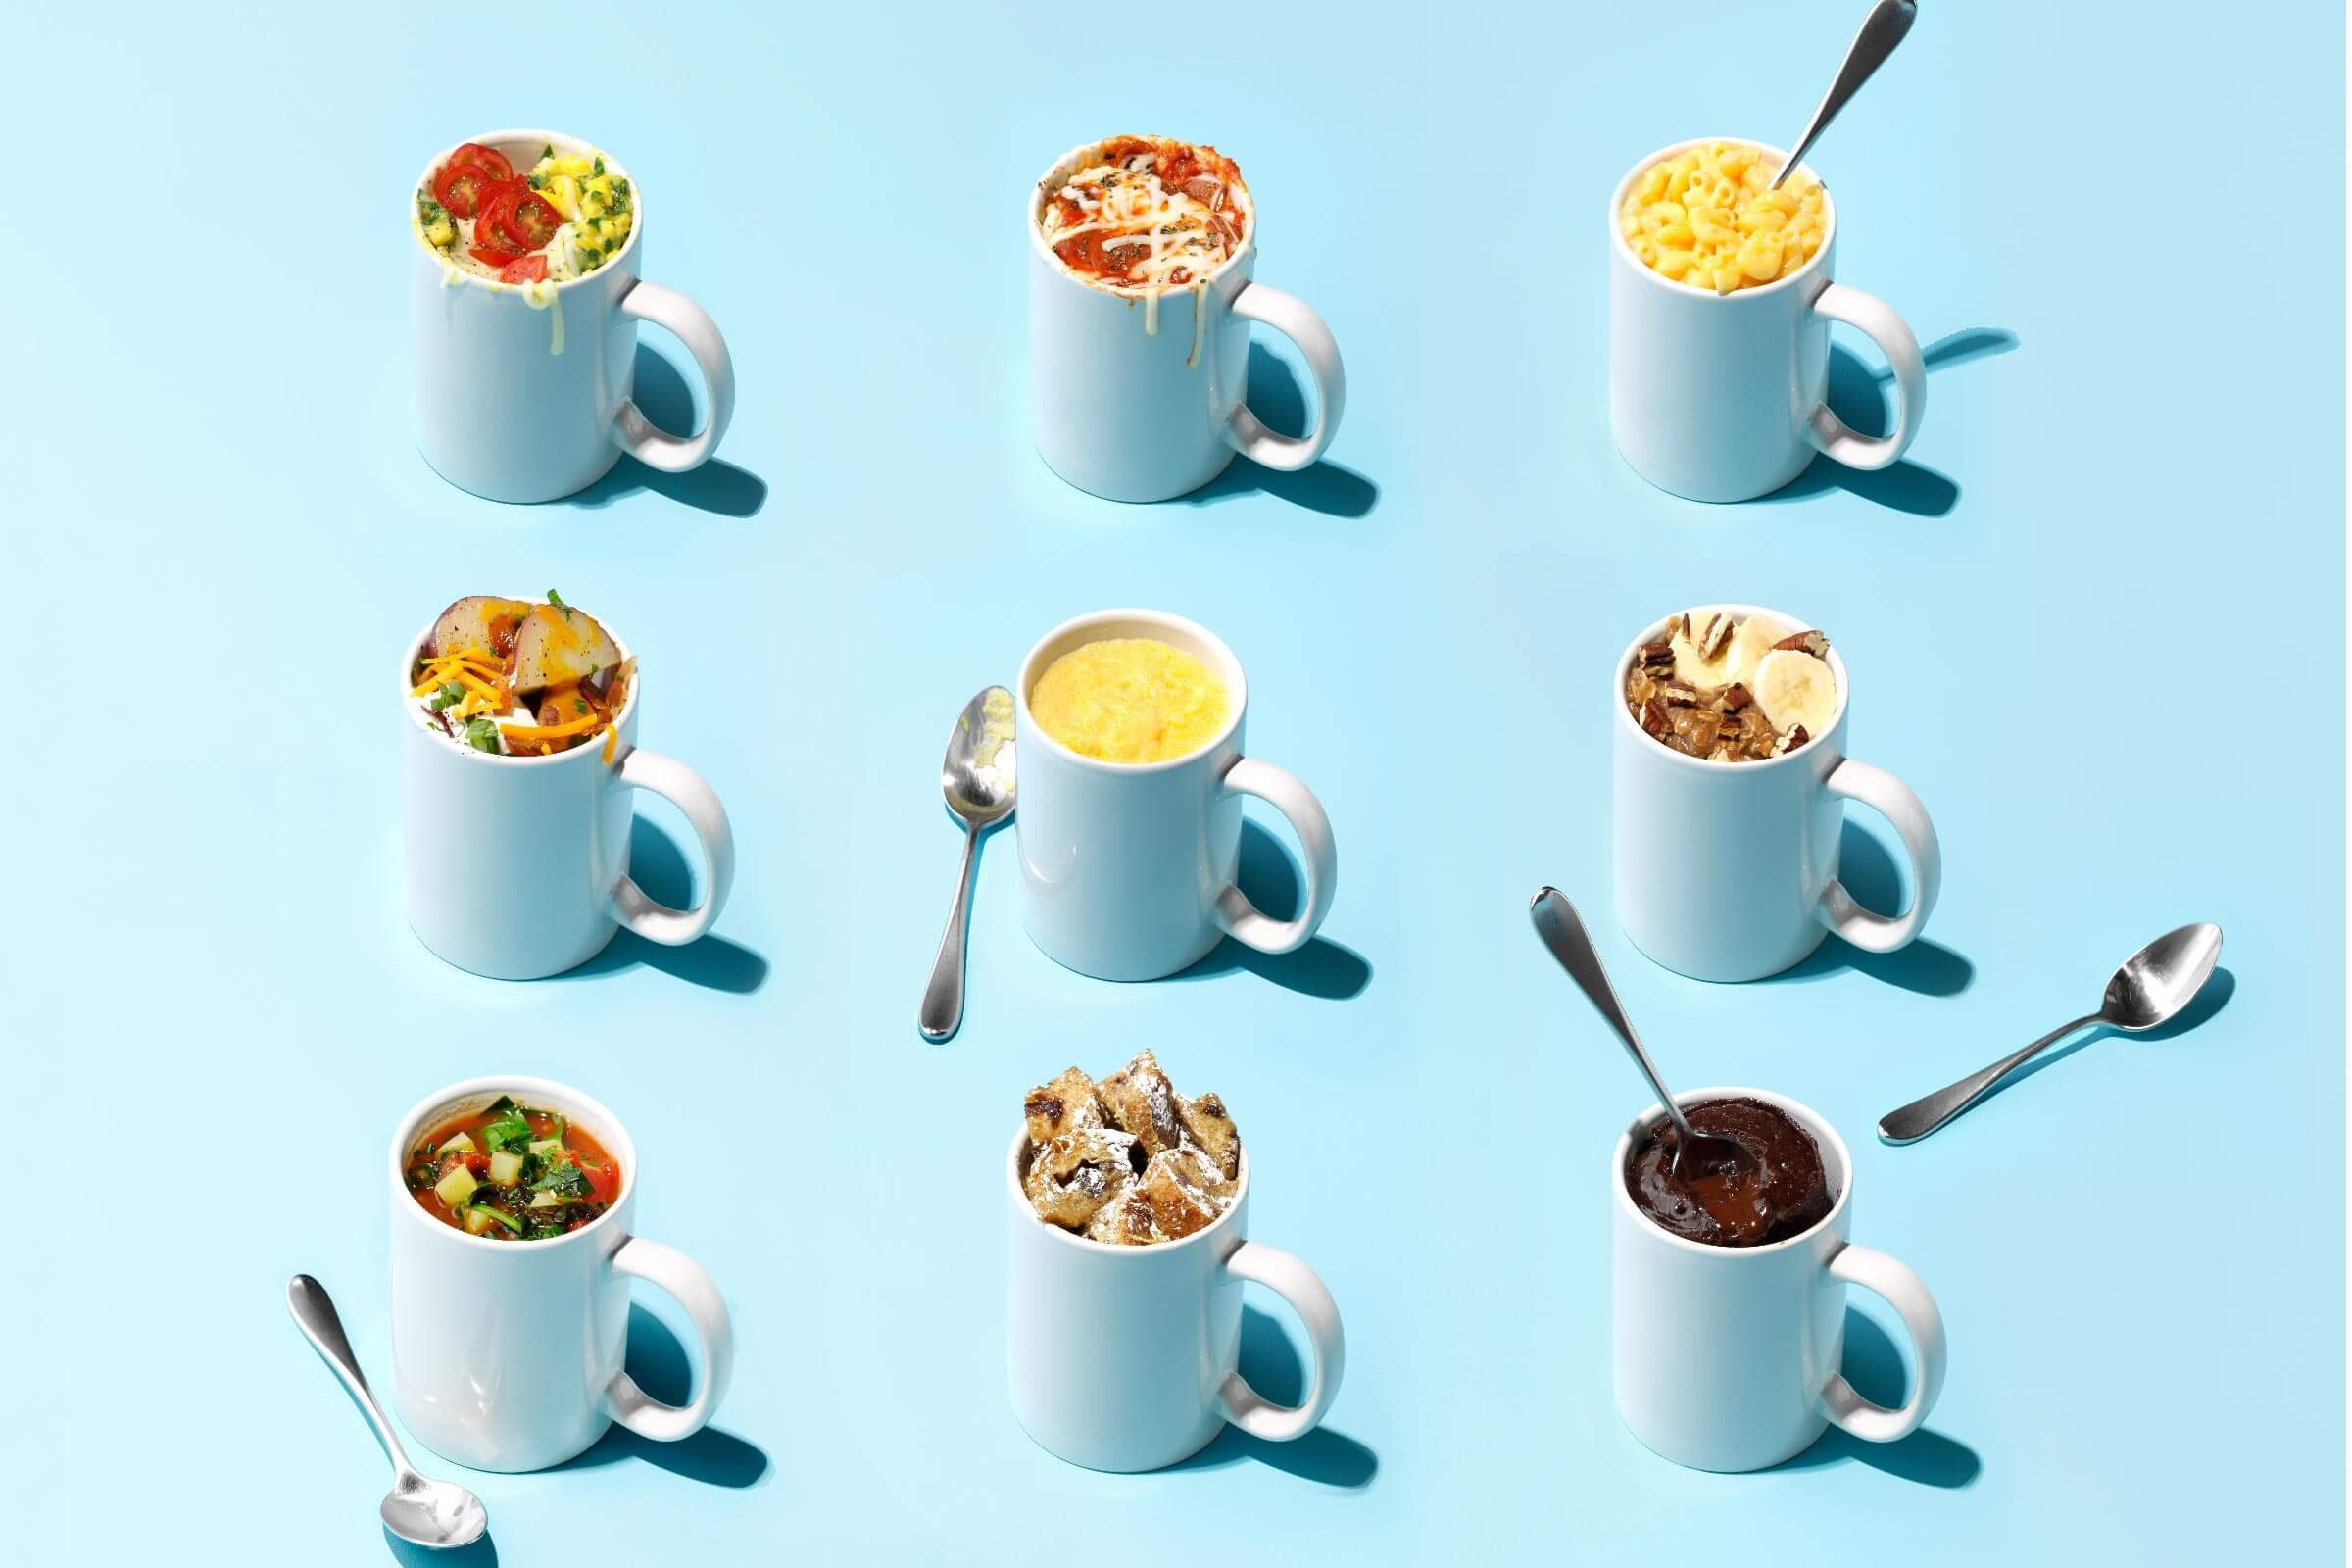 9 Yummy Meals You Can Make In Your Favorite Mug The Microwave